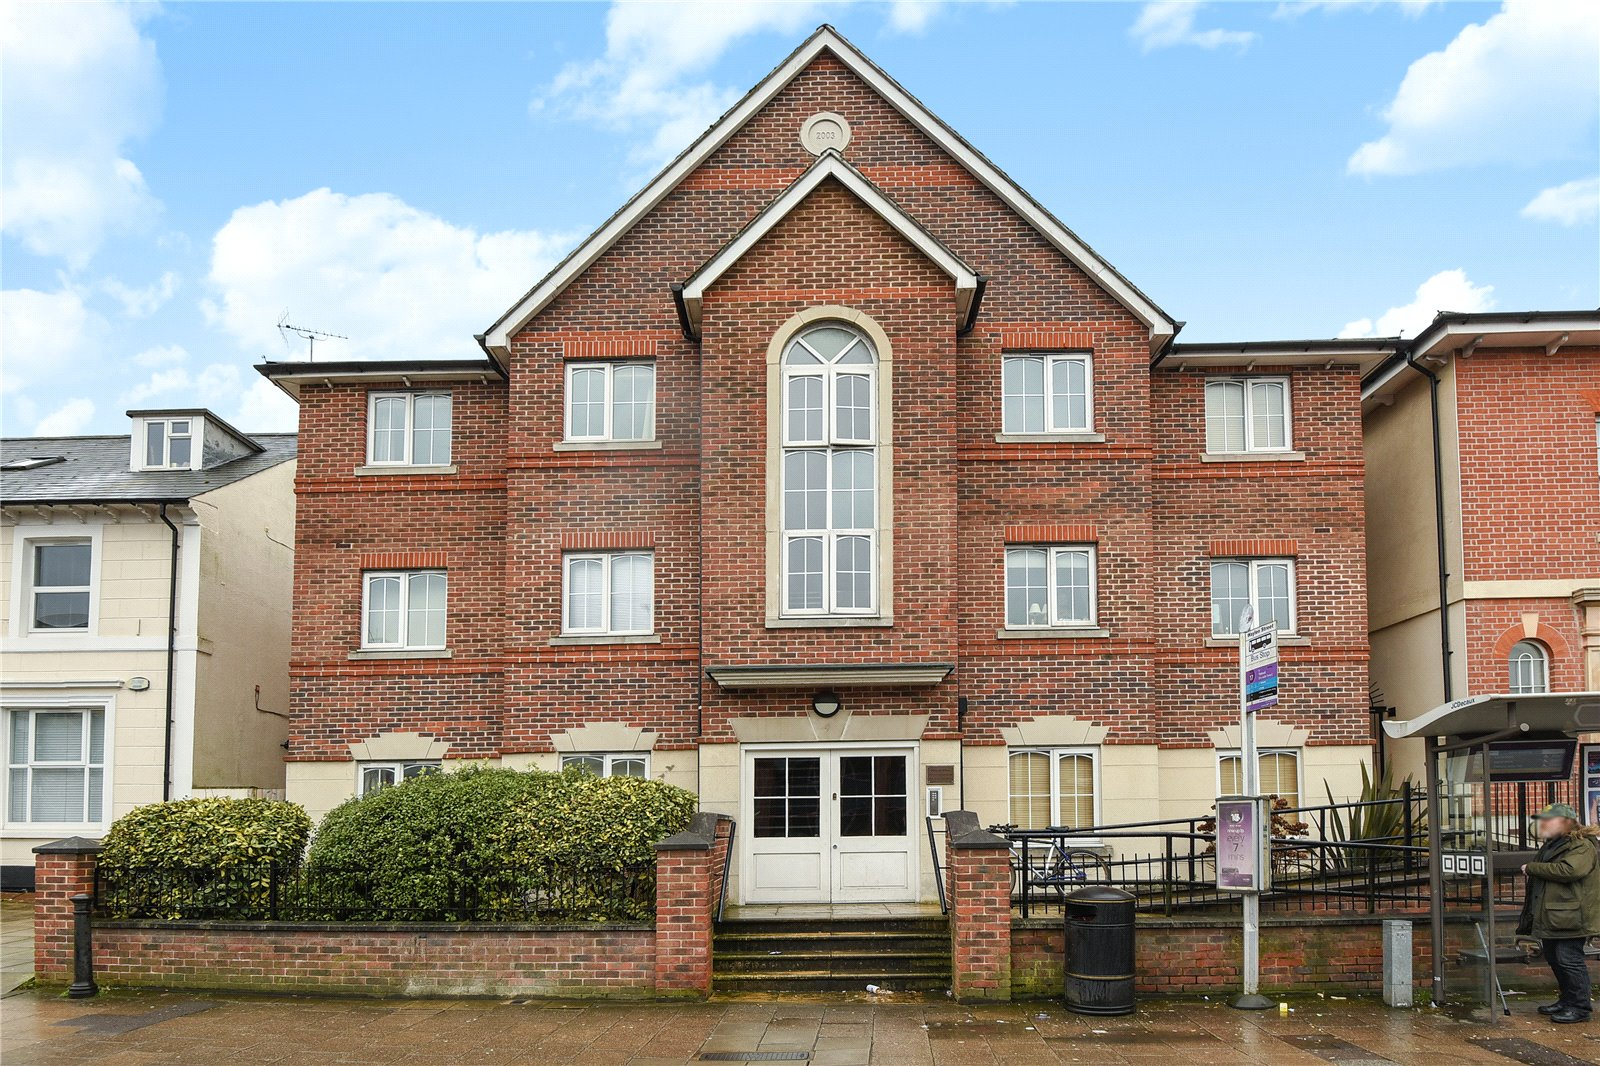 2 Bedrooms Apartment Flat for sale in Phoenix Place, Waylen Street, Reading, Berkshire, RG1